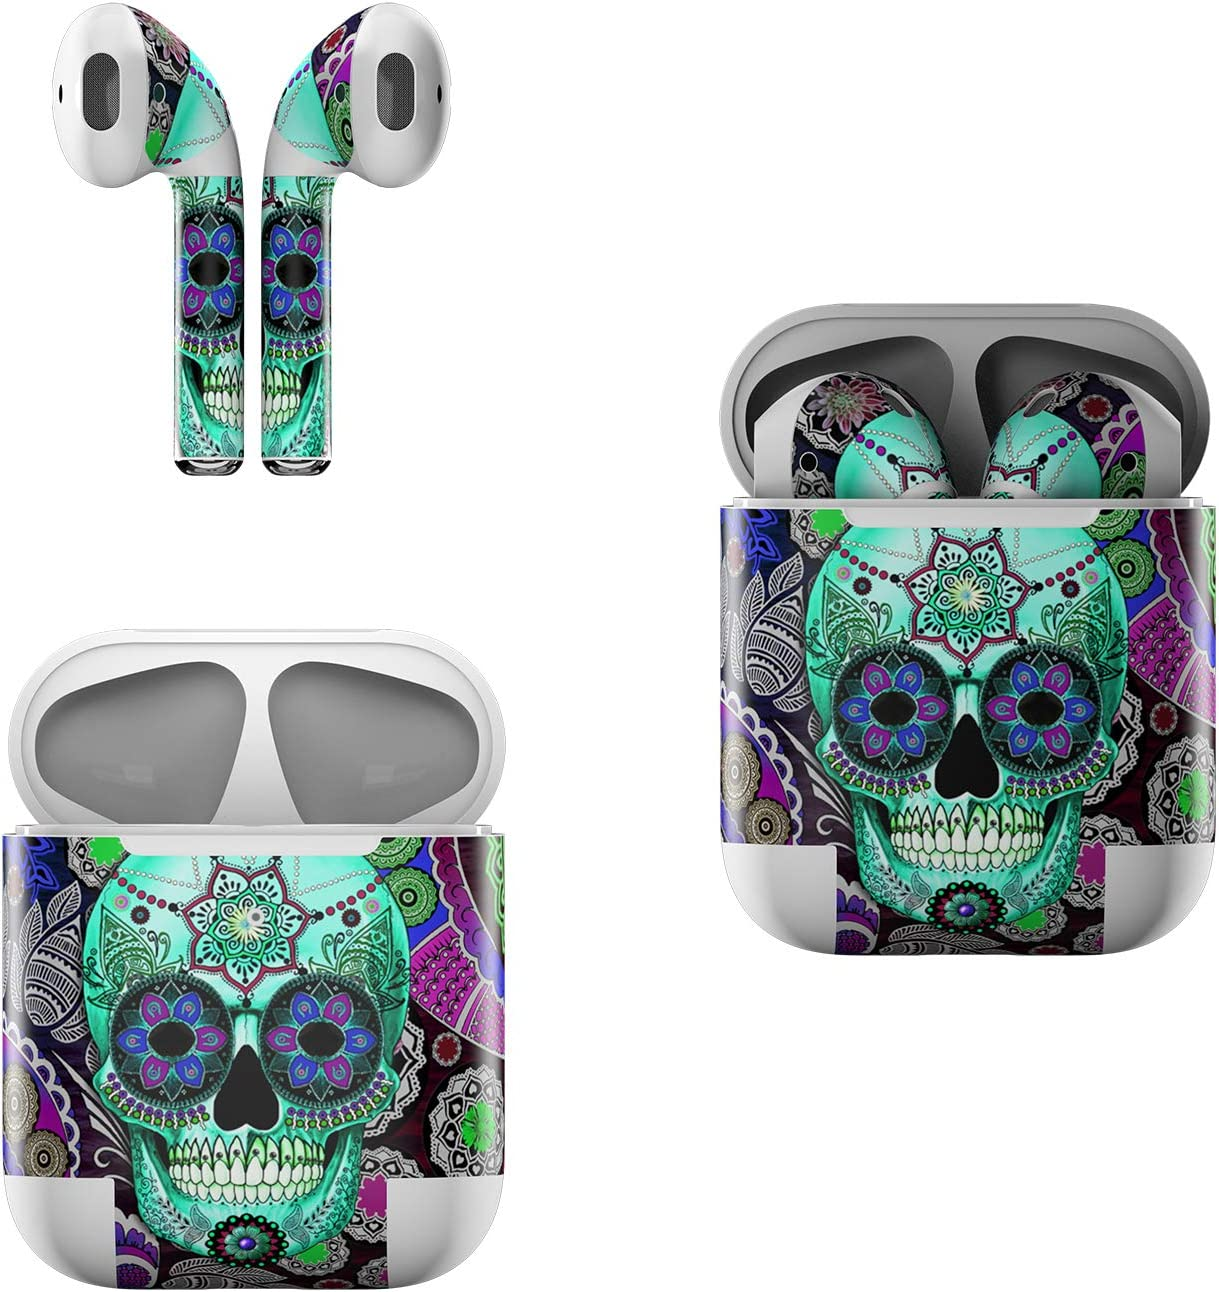 Skin Decals for Apple AirPods - Sugar Skull Sombrero - Sticker Wrap Fits 1st and 2nd Generation